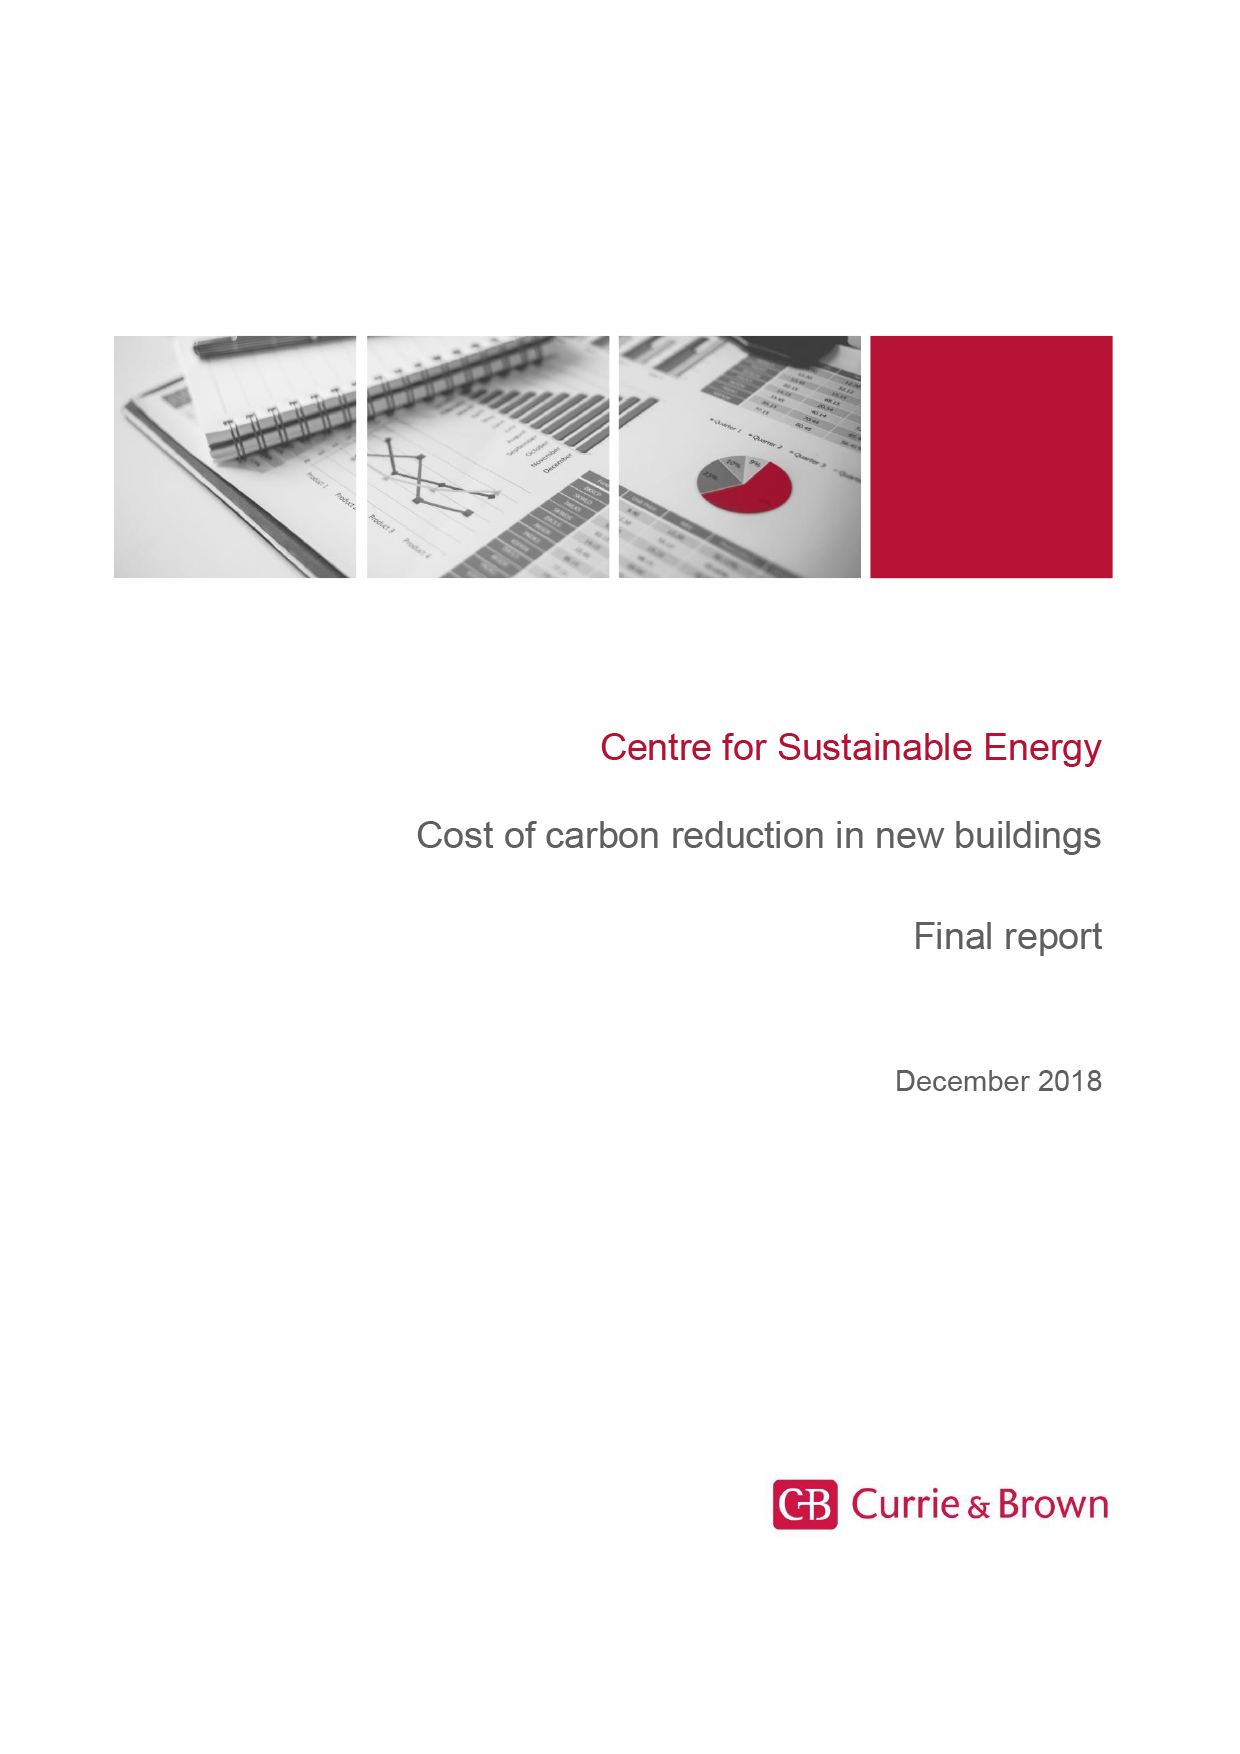 Cost of carbon reduction in new buildings